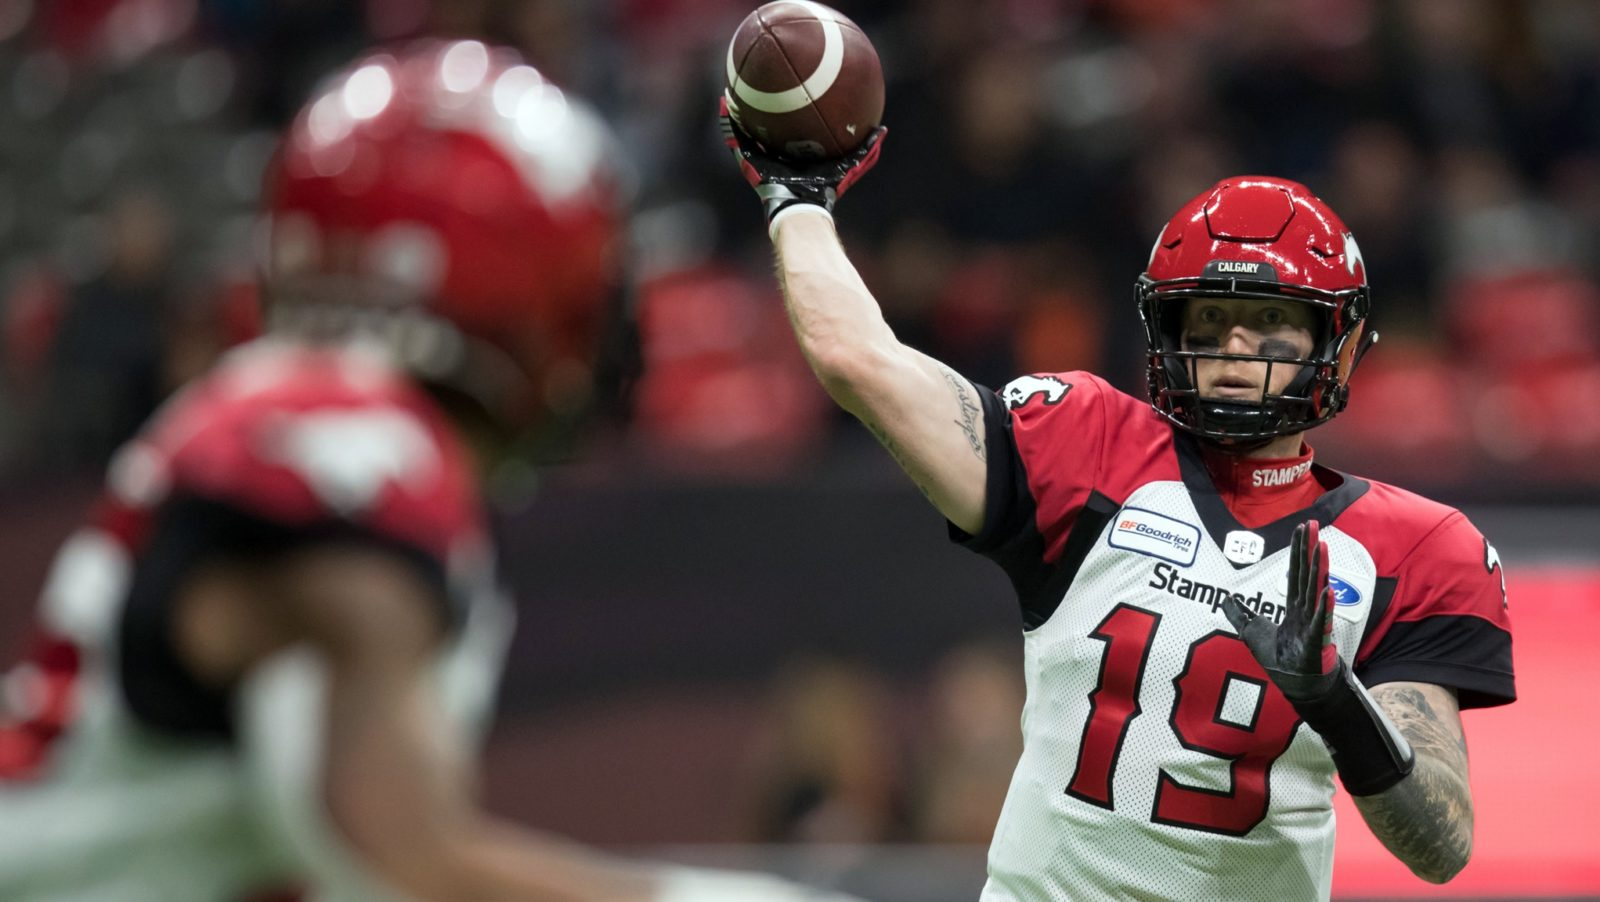 Cauz: Filling the in-between time of the off-season - CFL.ca